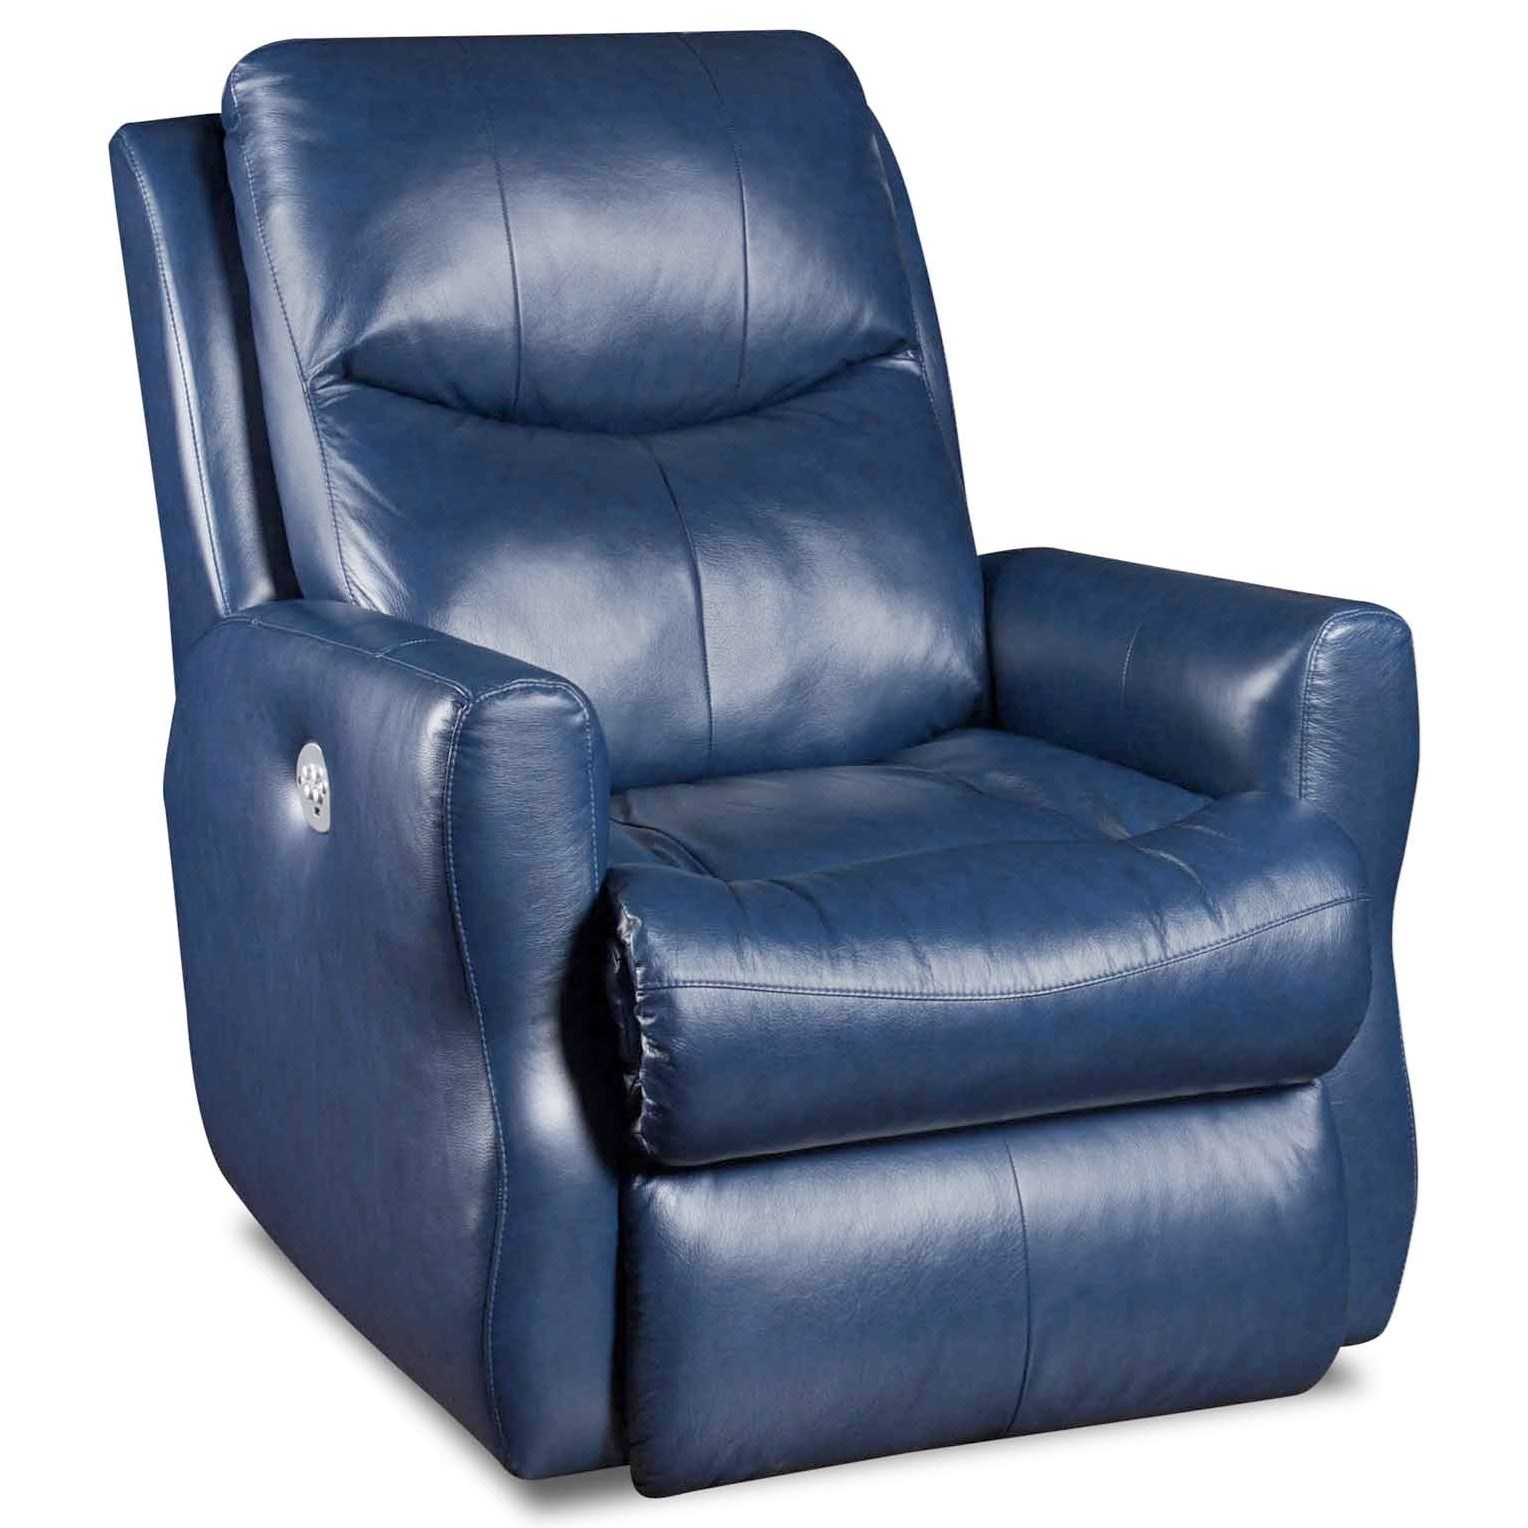 Southern Motion Recliners 6007p Fame Power Headrest Wall